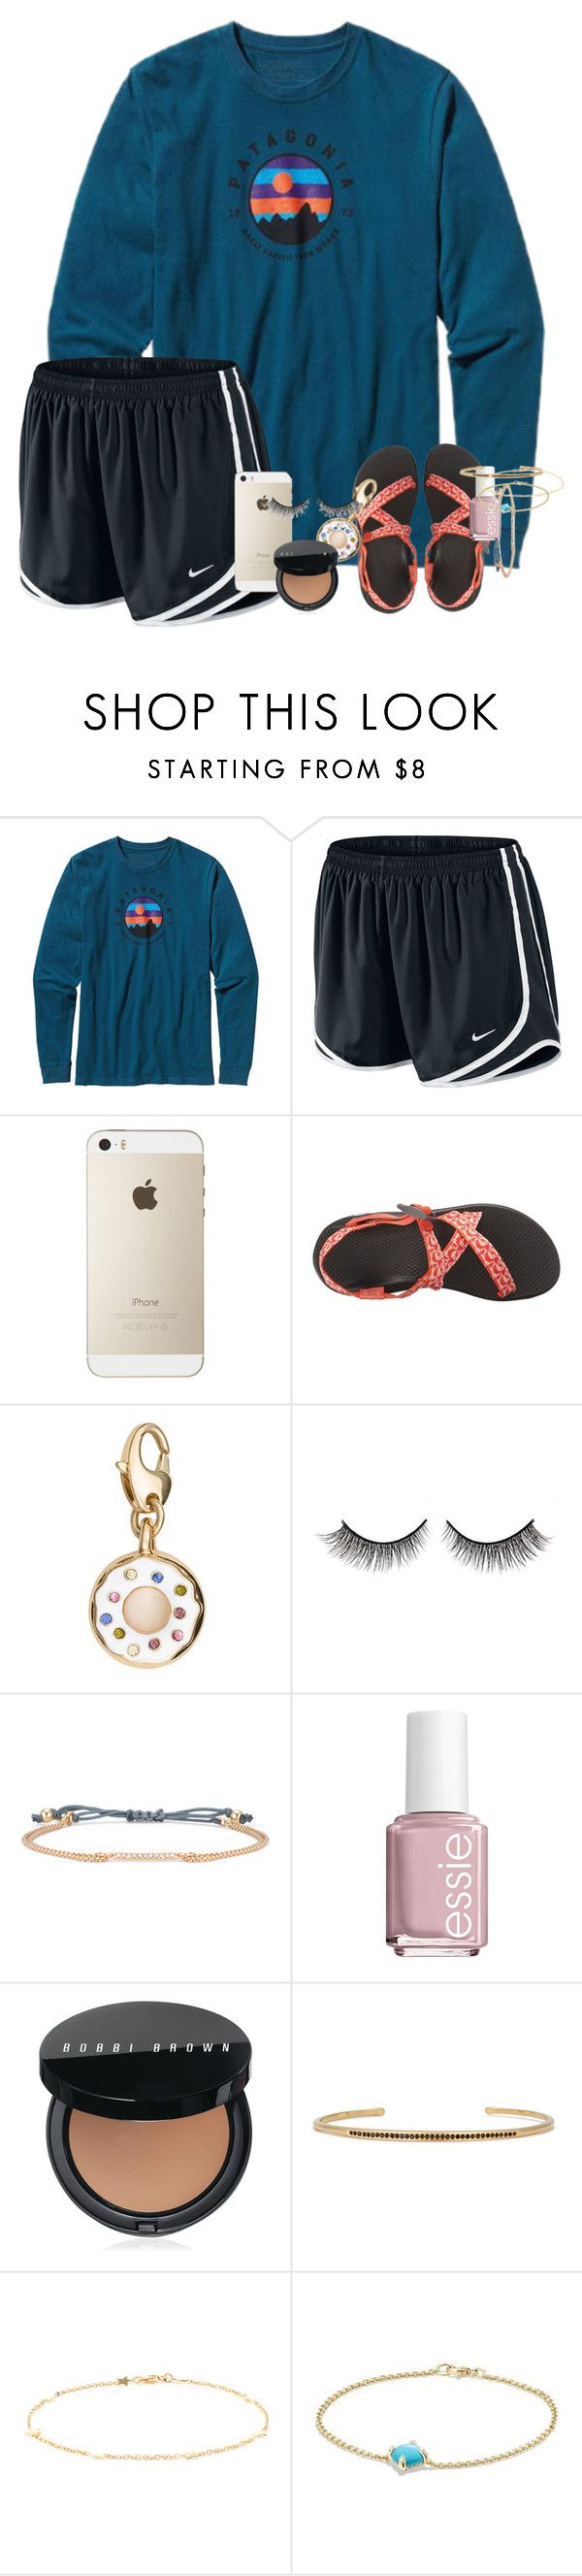 """Did some on-line shopping today "" by erinlmarkel ❤ liked on Polyvore featuring Patagonia, NIKE, Chaco, Kate Spade, Rimini, Stella & Dot, Essie, Bobbi Brown Cosmetics, Luis Miguel Howard and David Yurman"